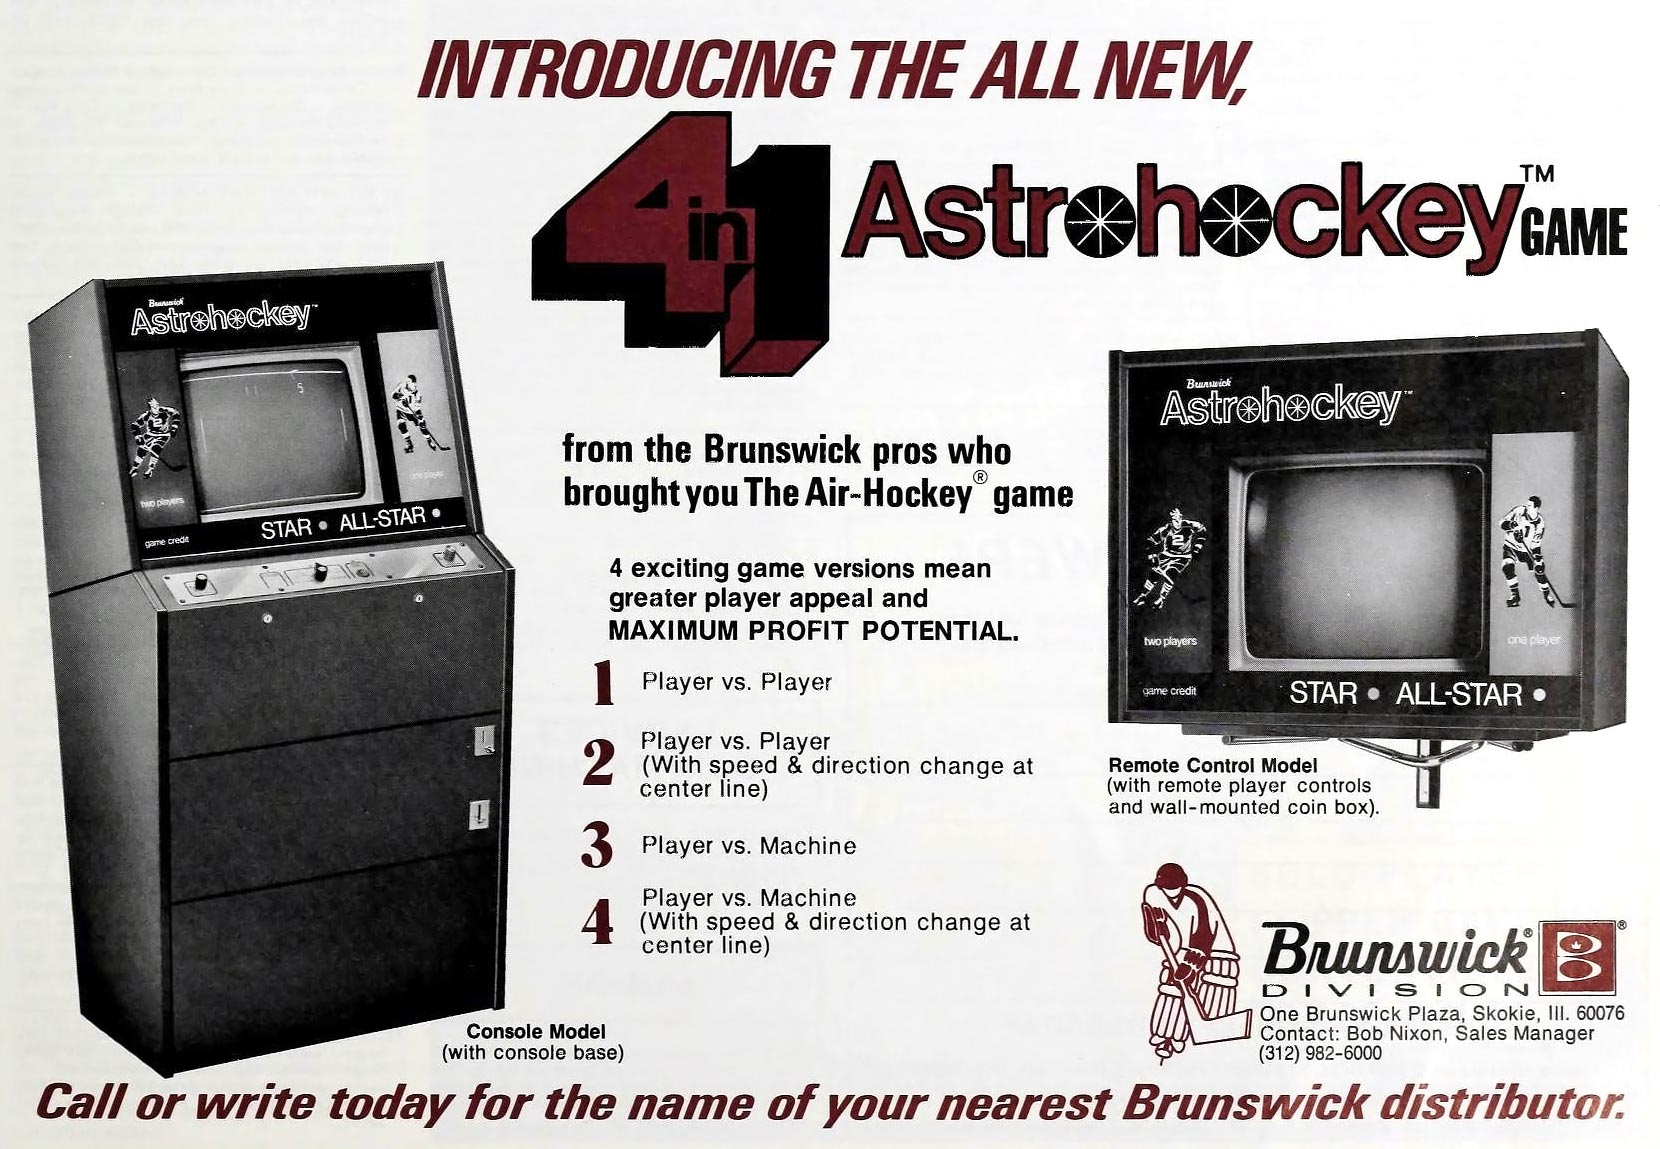 Brunswick Astrohockey, a pong-type arcade video game